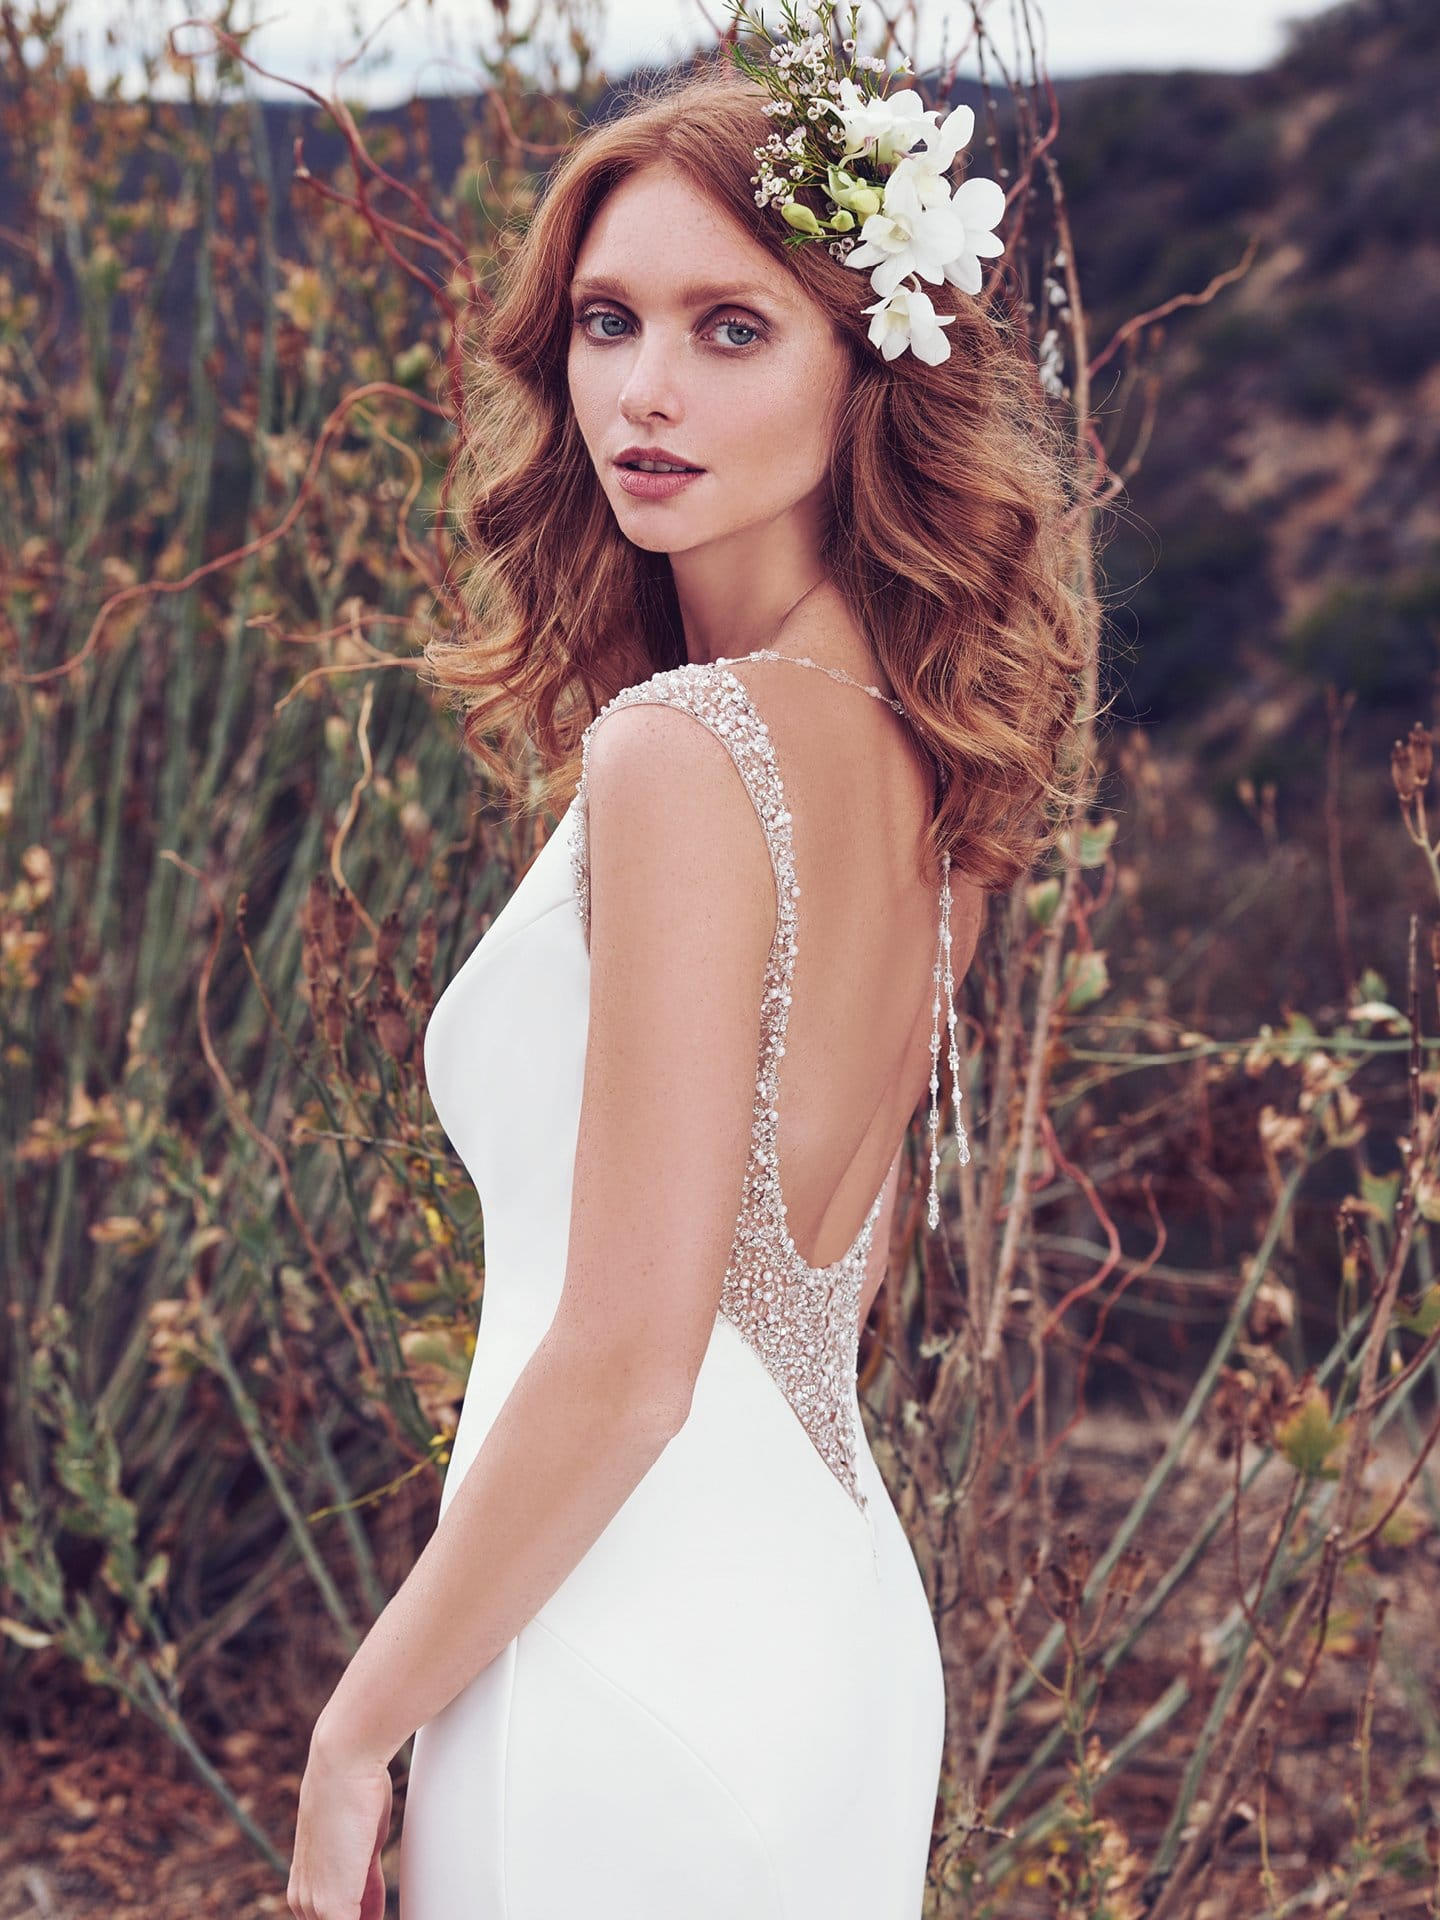 Beautiful statement-back wedding dresses from Maggie Sottero and Sottero and Midgley - Simple yet chic, this Aldora Satin wedding dress features illusion and Swarovski crystals accenting the shoulders, gliding into a shimmering ribbon of pearls and beading that ties in the plunging back, also trimmed in illusion and Swarovski crystals. Evangelina by Maggie Sottero.